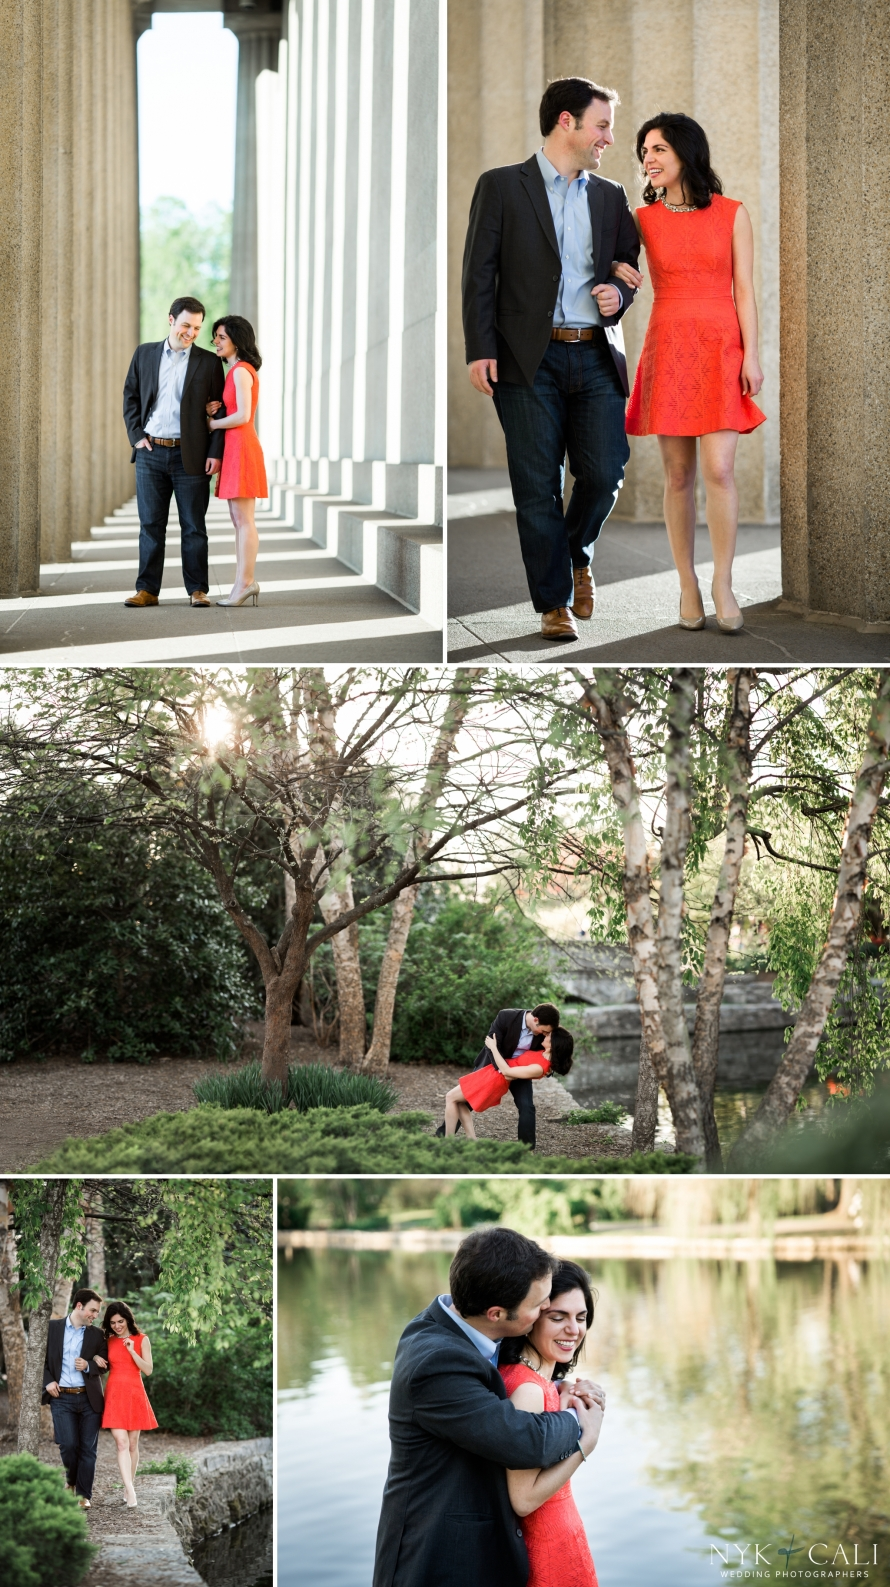 Nashville-engagement-session-Nyk-cali-02